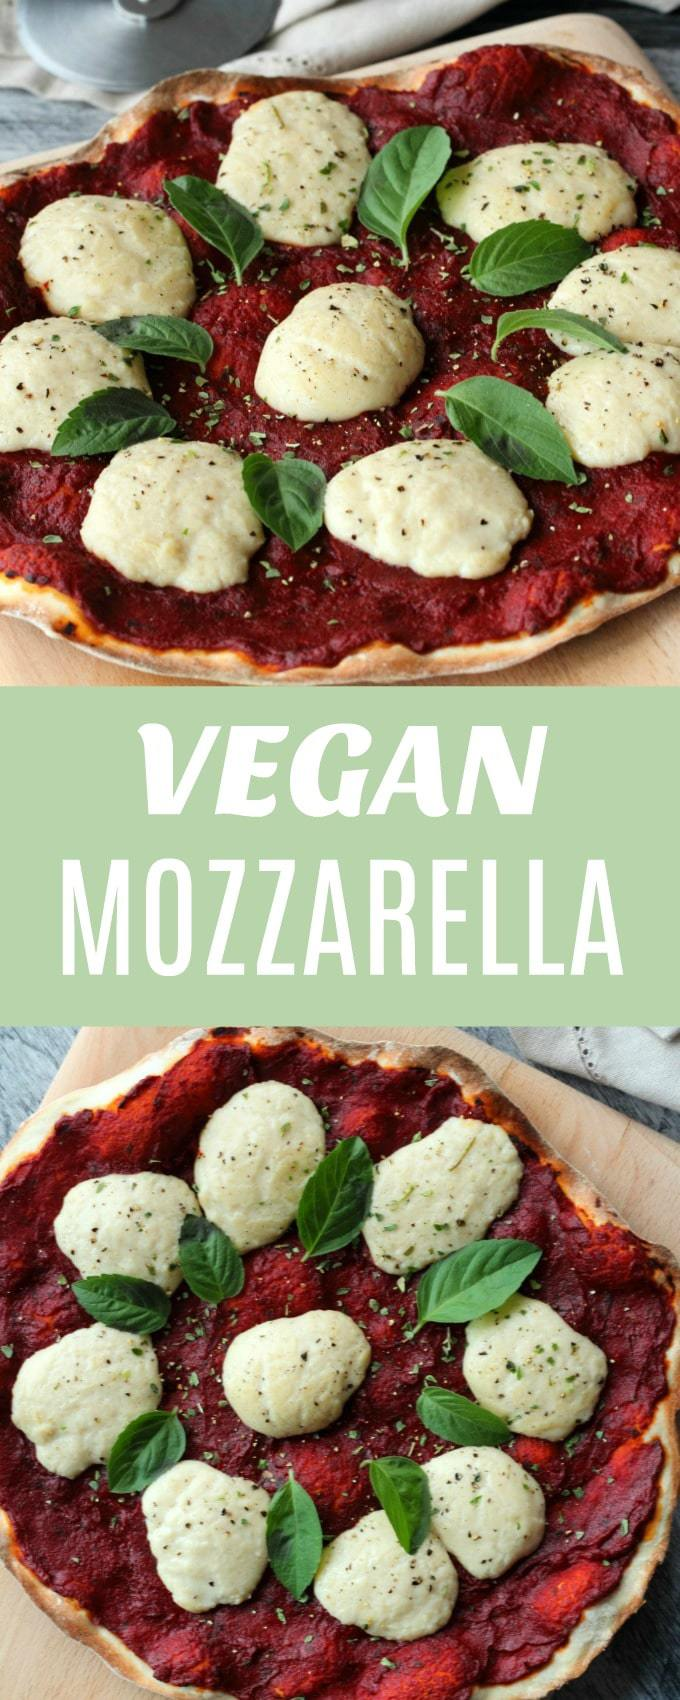 Stretchy melty and so cheesy you won't believe you made it yourself vegan mozzarella! Super easy, divine on pizza and inside grilled cheese sandwiches and wherever else gorgeous gooey mozzarella balls are needed! | lovingitvegan.com